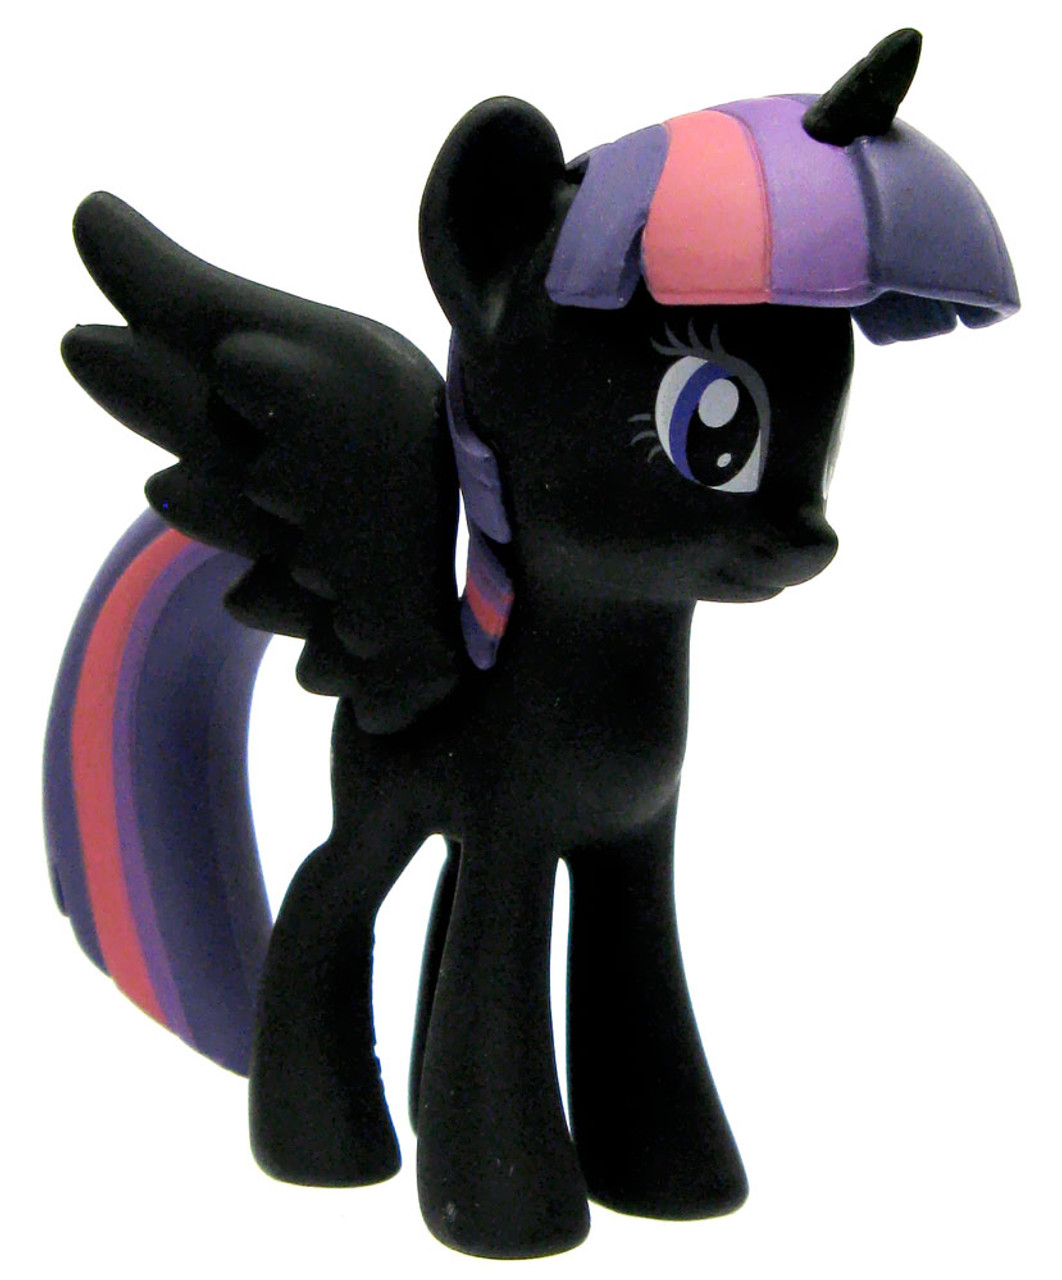 Funko My Little Pony Mystery Minis Series 2 Princess Twilight Sparkle 2.5-Inch Mystery Minifigure [Black Paint Loose]